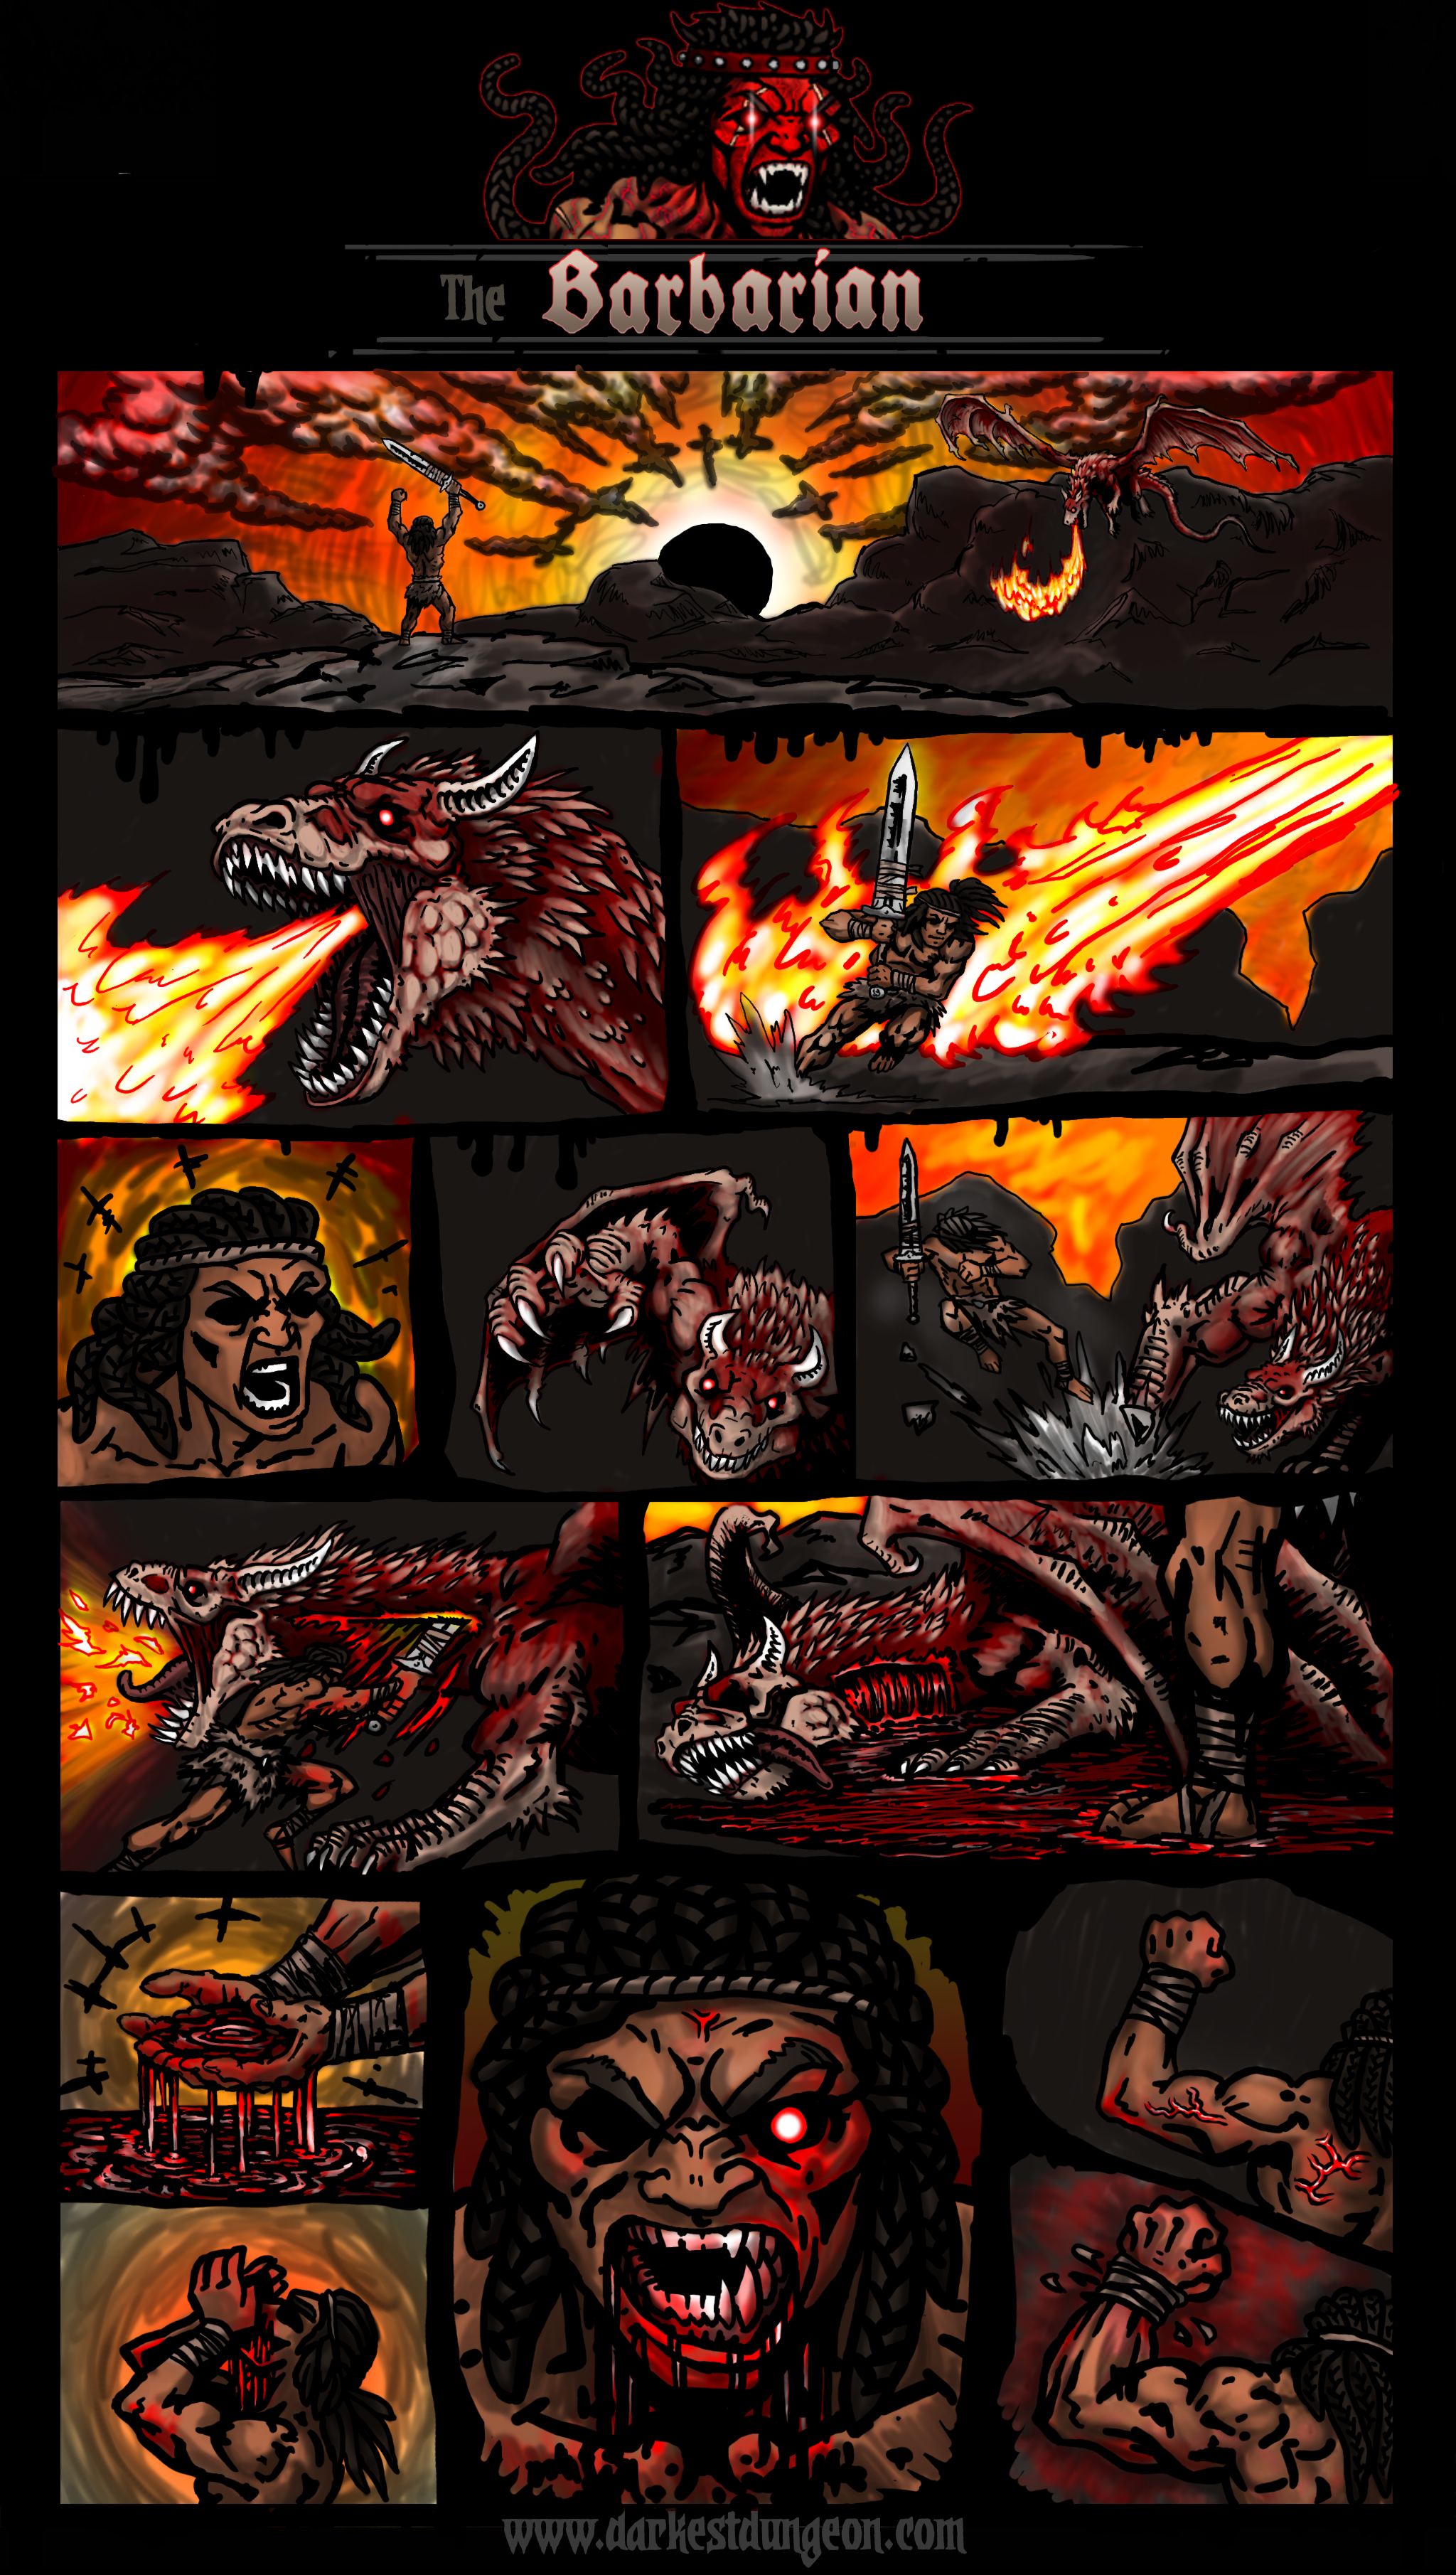 The Barbarian (mod comic) by ahmonza on Newgrounds